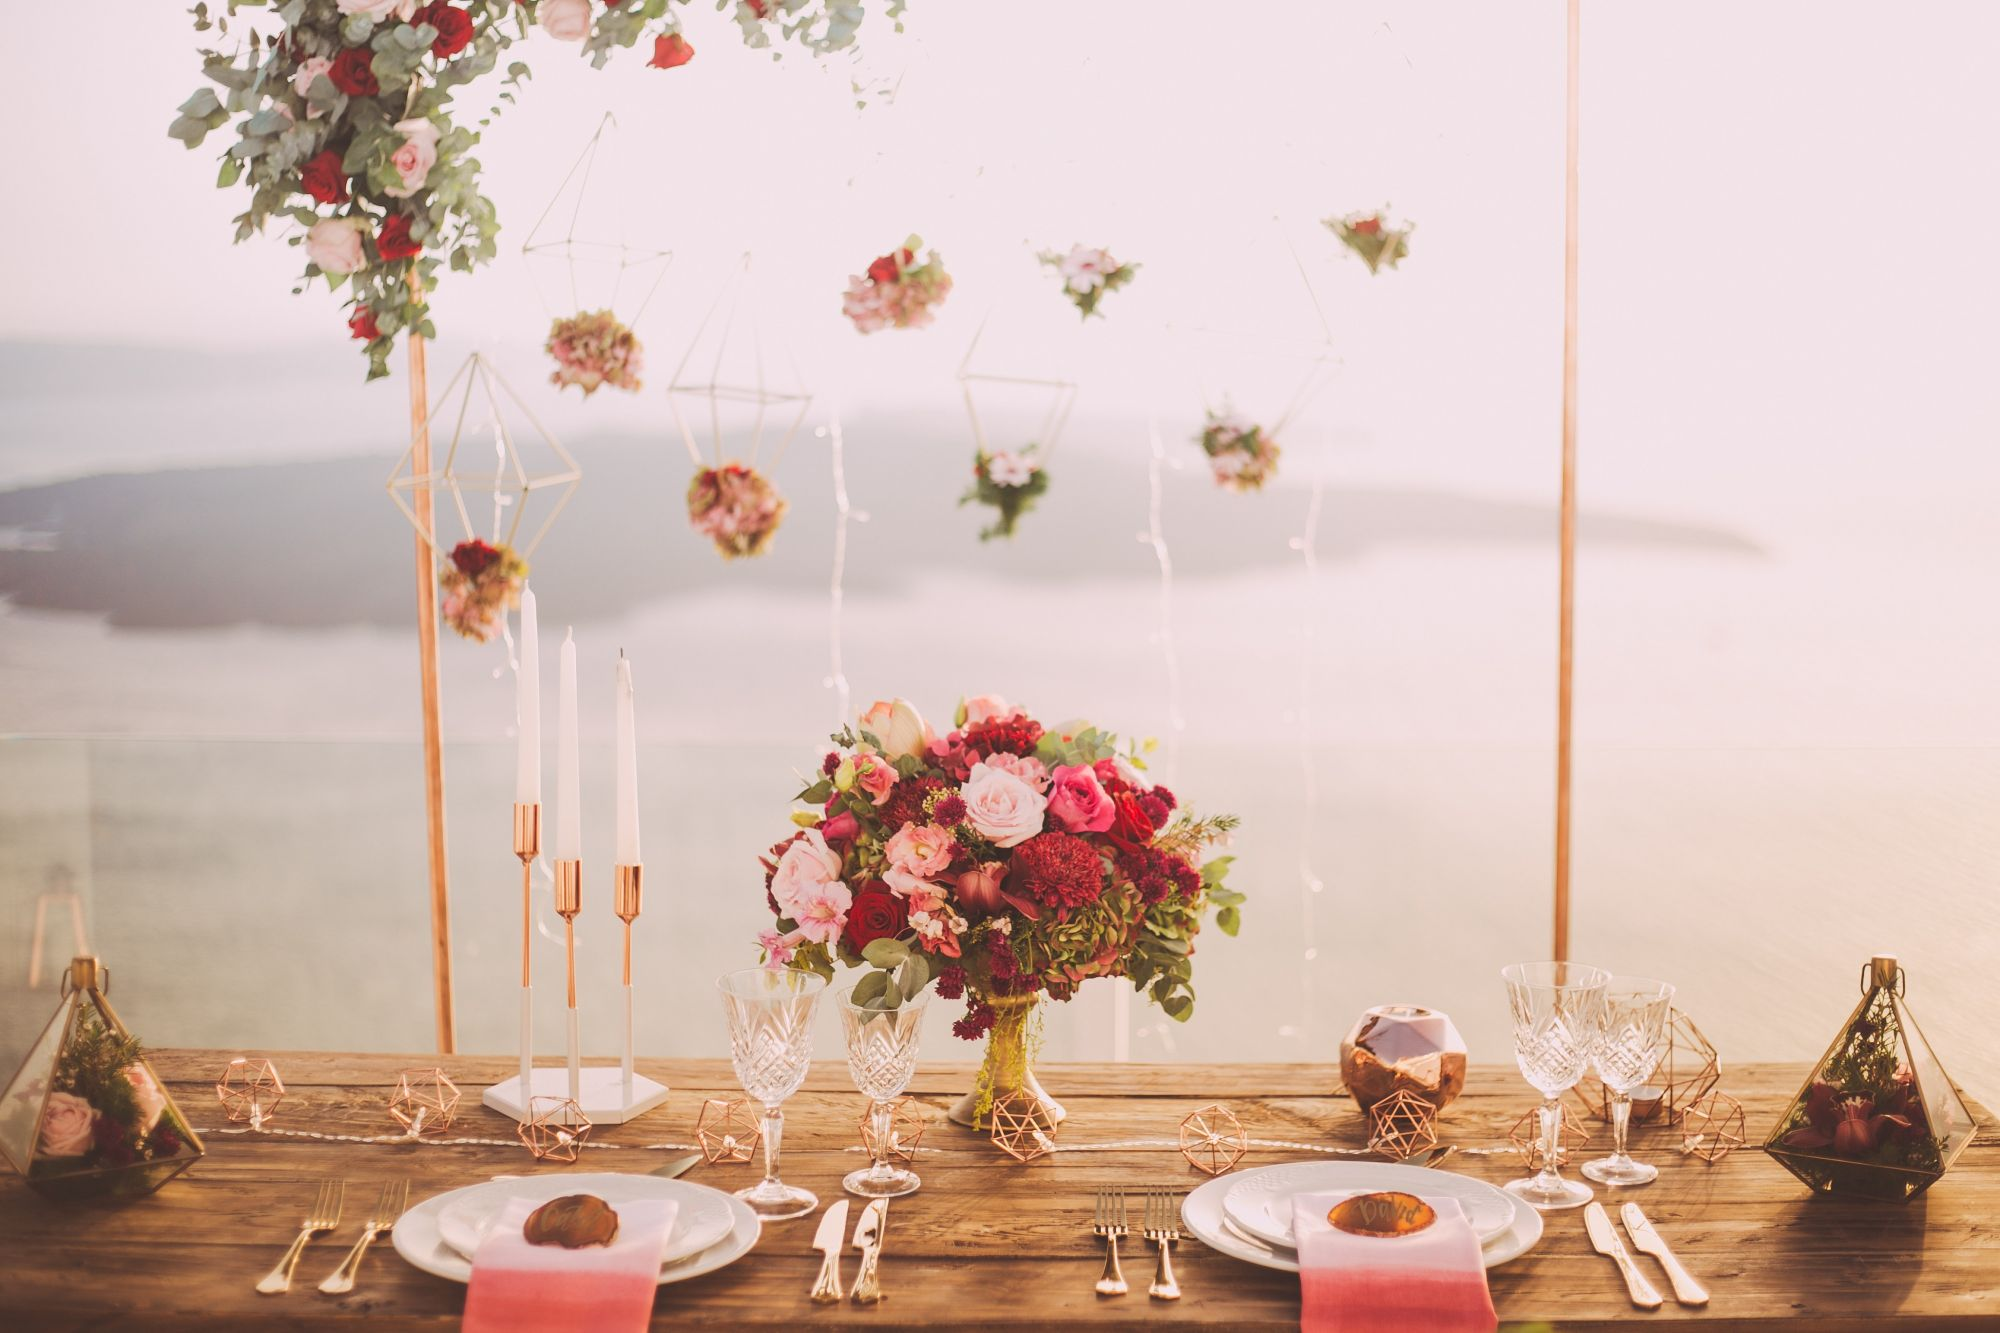 5 Ways To Add Artistic Flair To Your Wedding